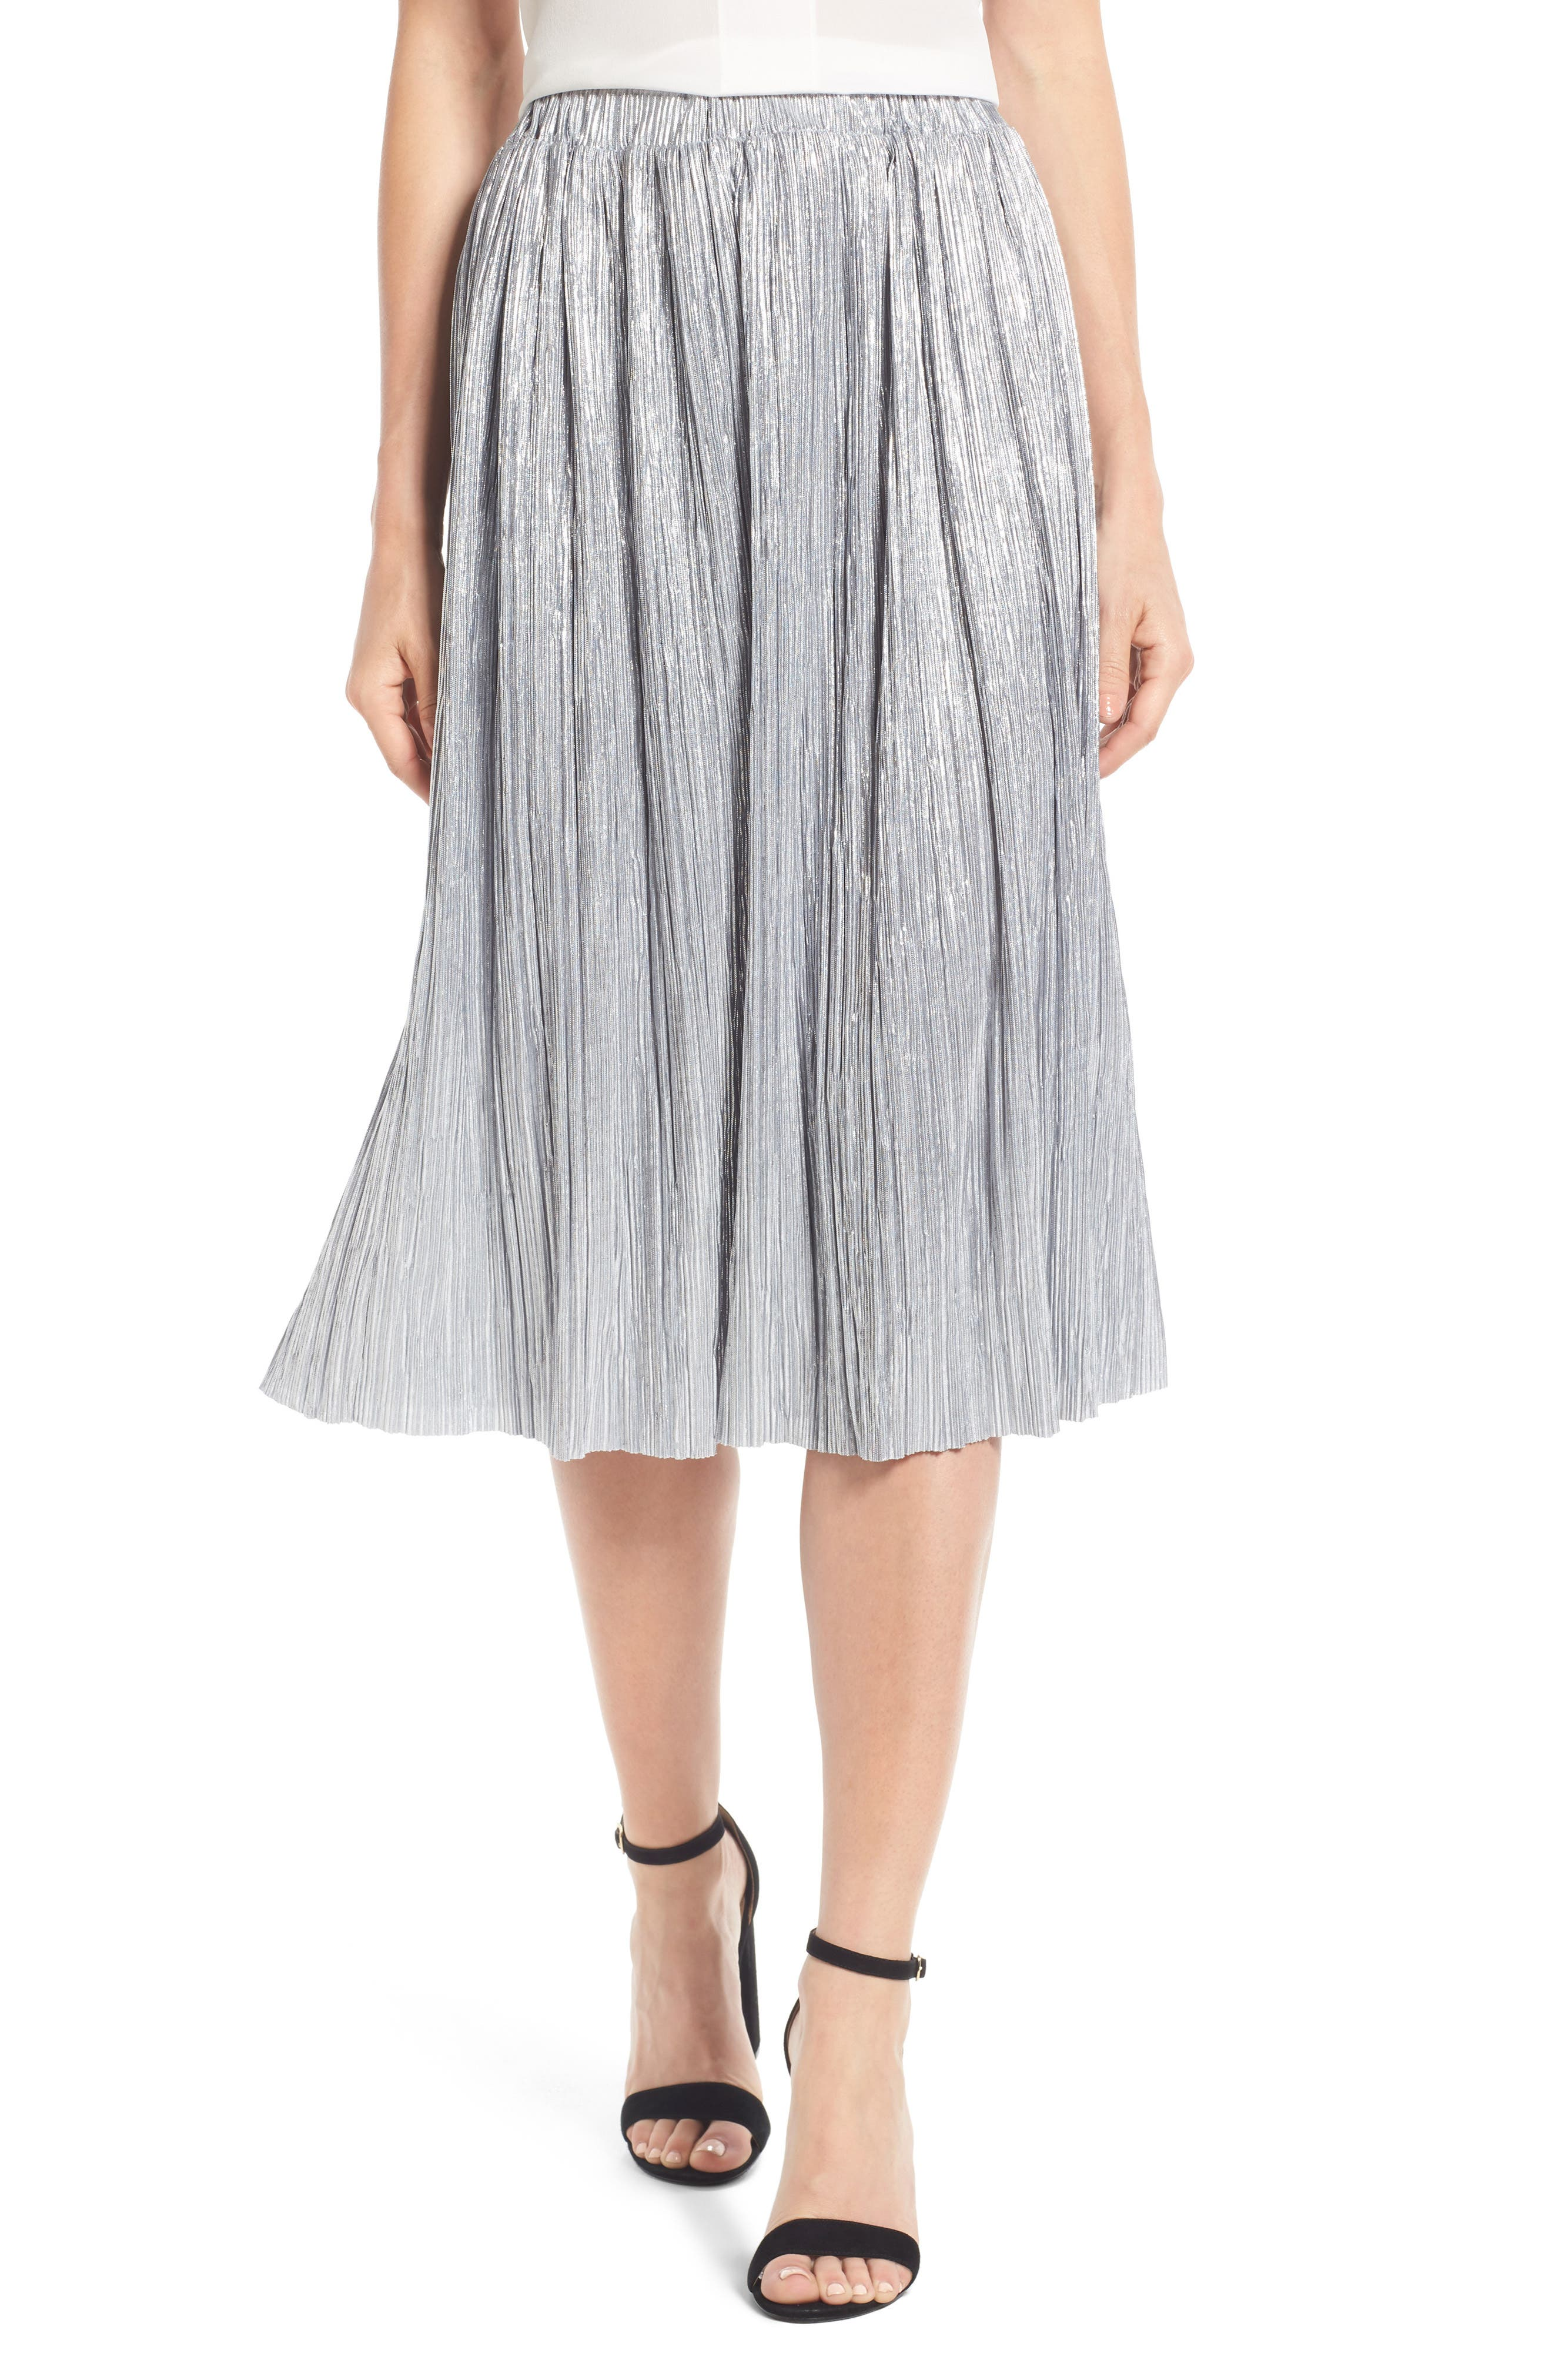 Pink Skirts: A-Line, Pencil, Maxi, Miniskirts & More | Nordstrom ...